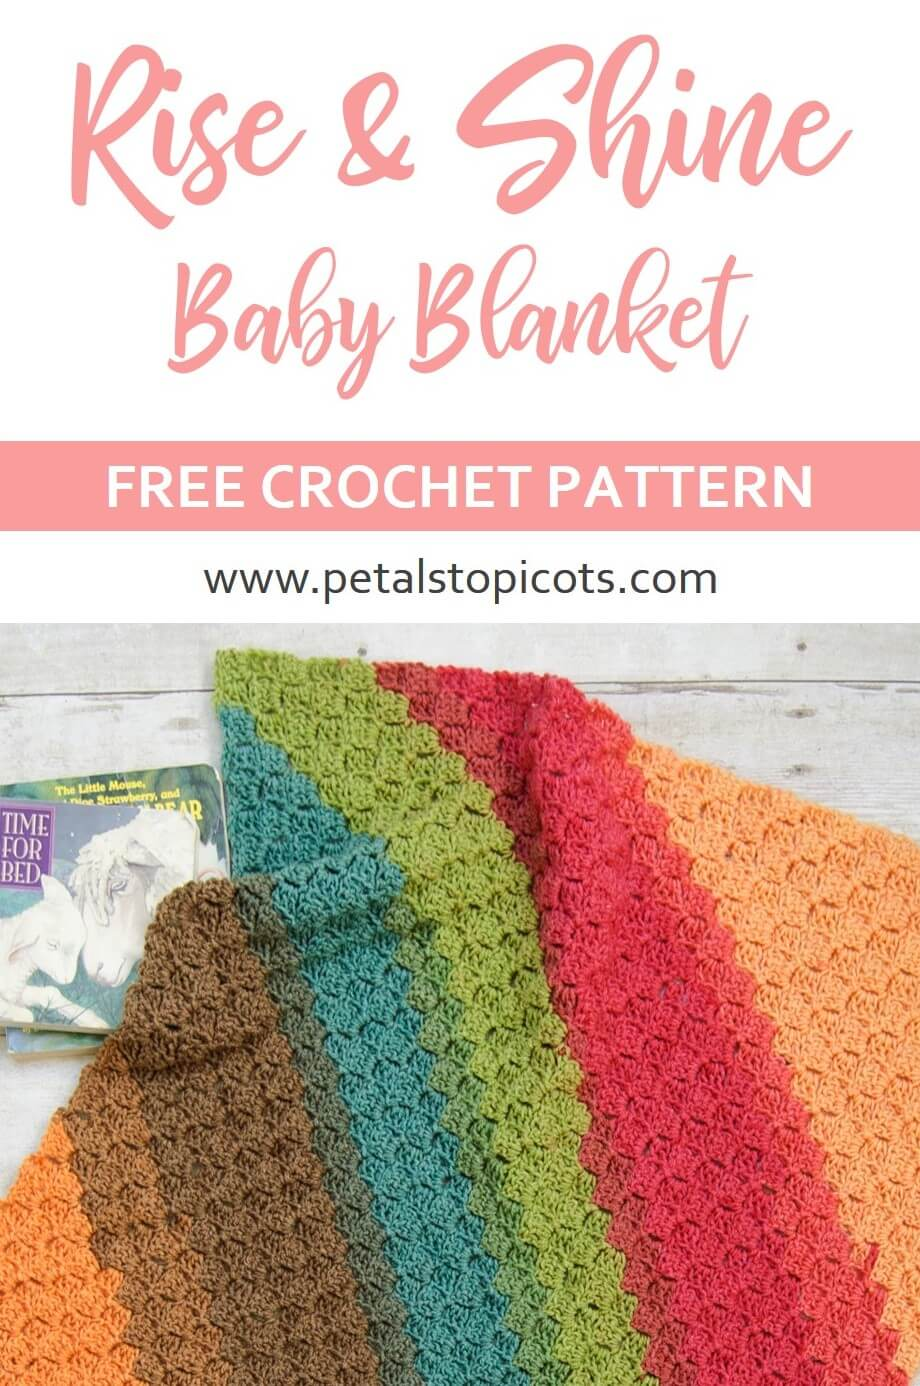 This colorful crochet baby blanket is a beautiful corner to corner design that is quick and easy to work up and perfect for gifting!